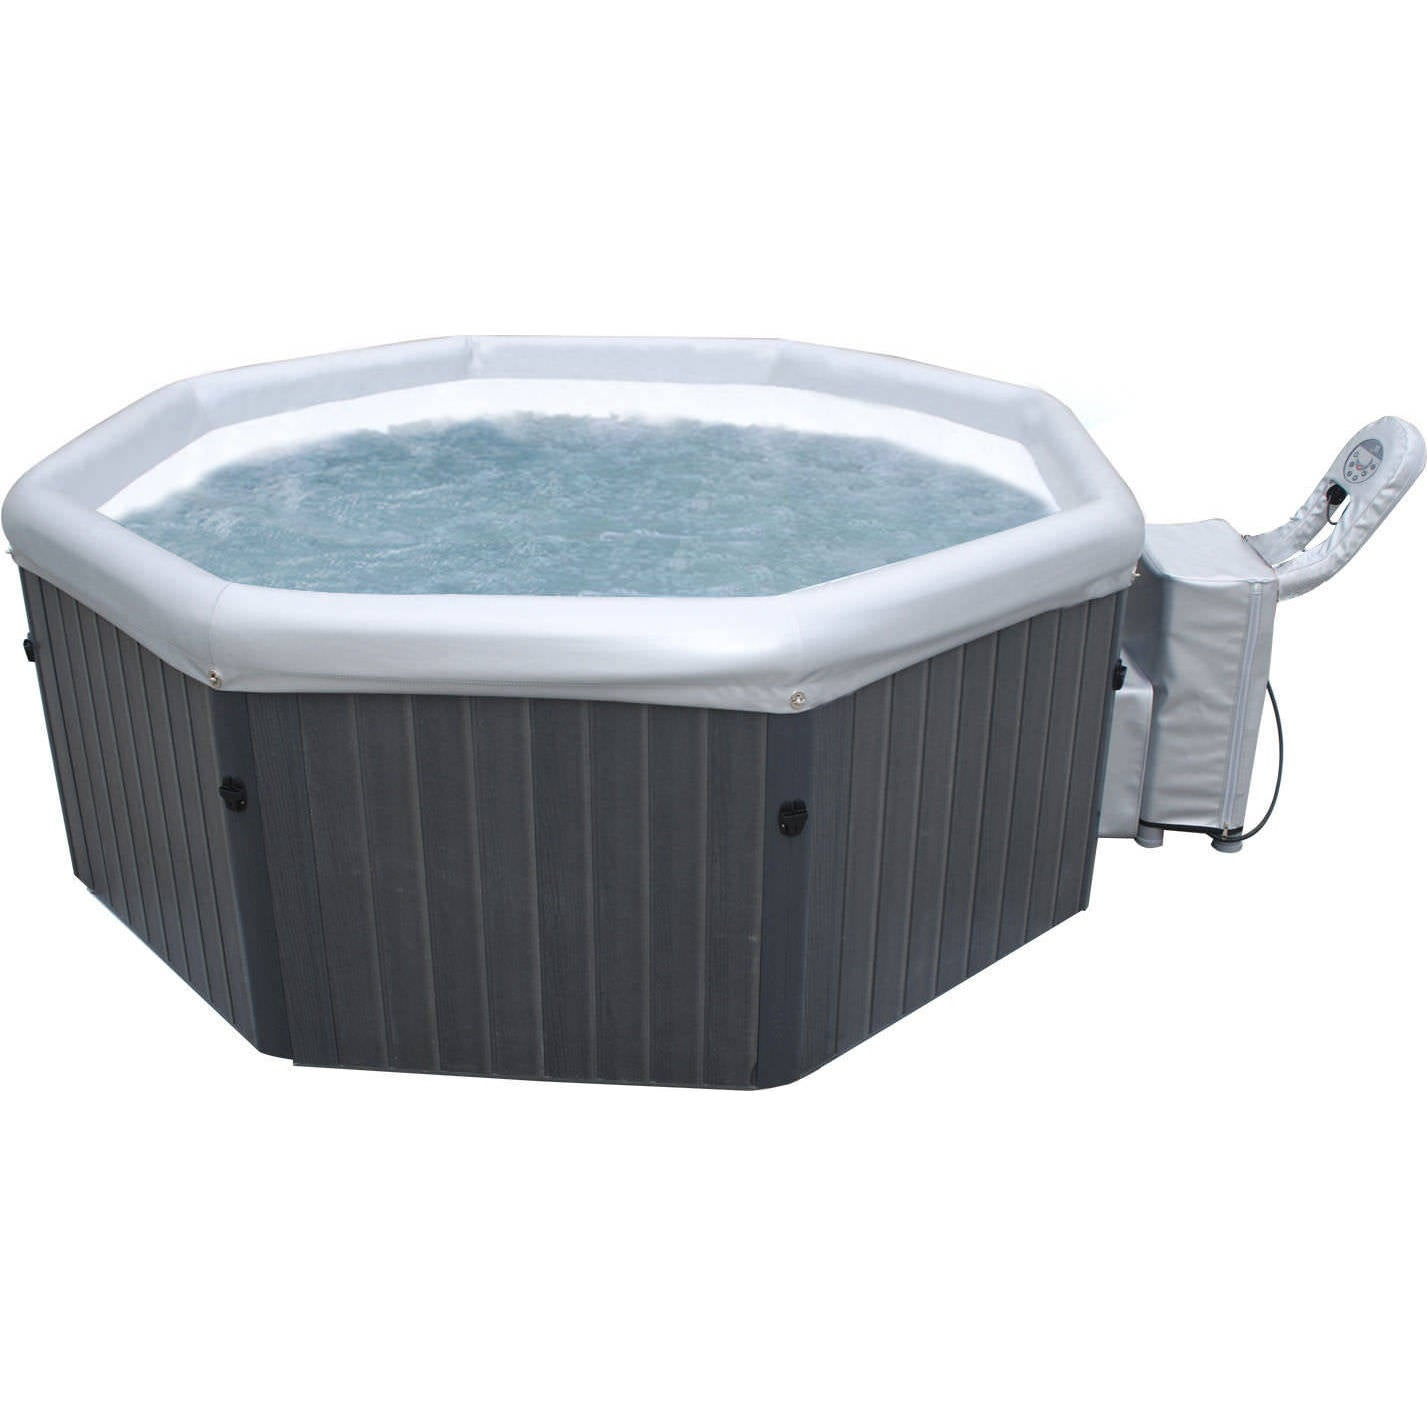 ique series hot plastic sweden hottubs tub silver tubs budget of tahiti